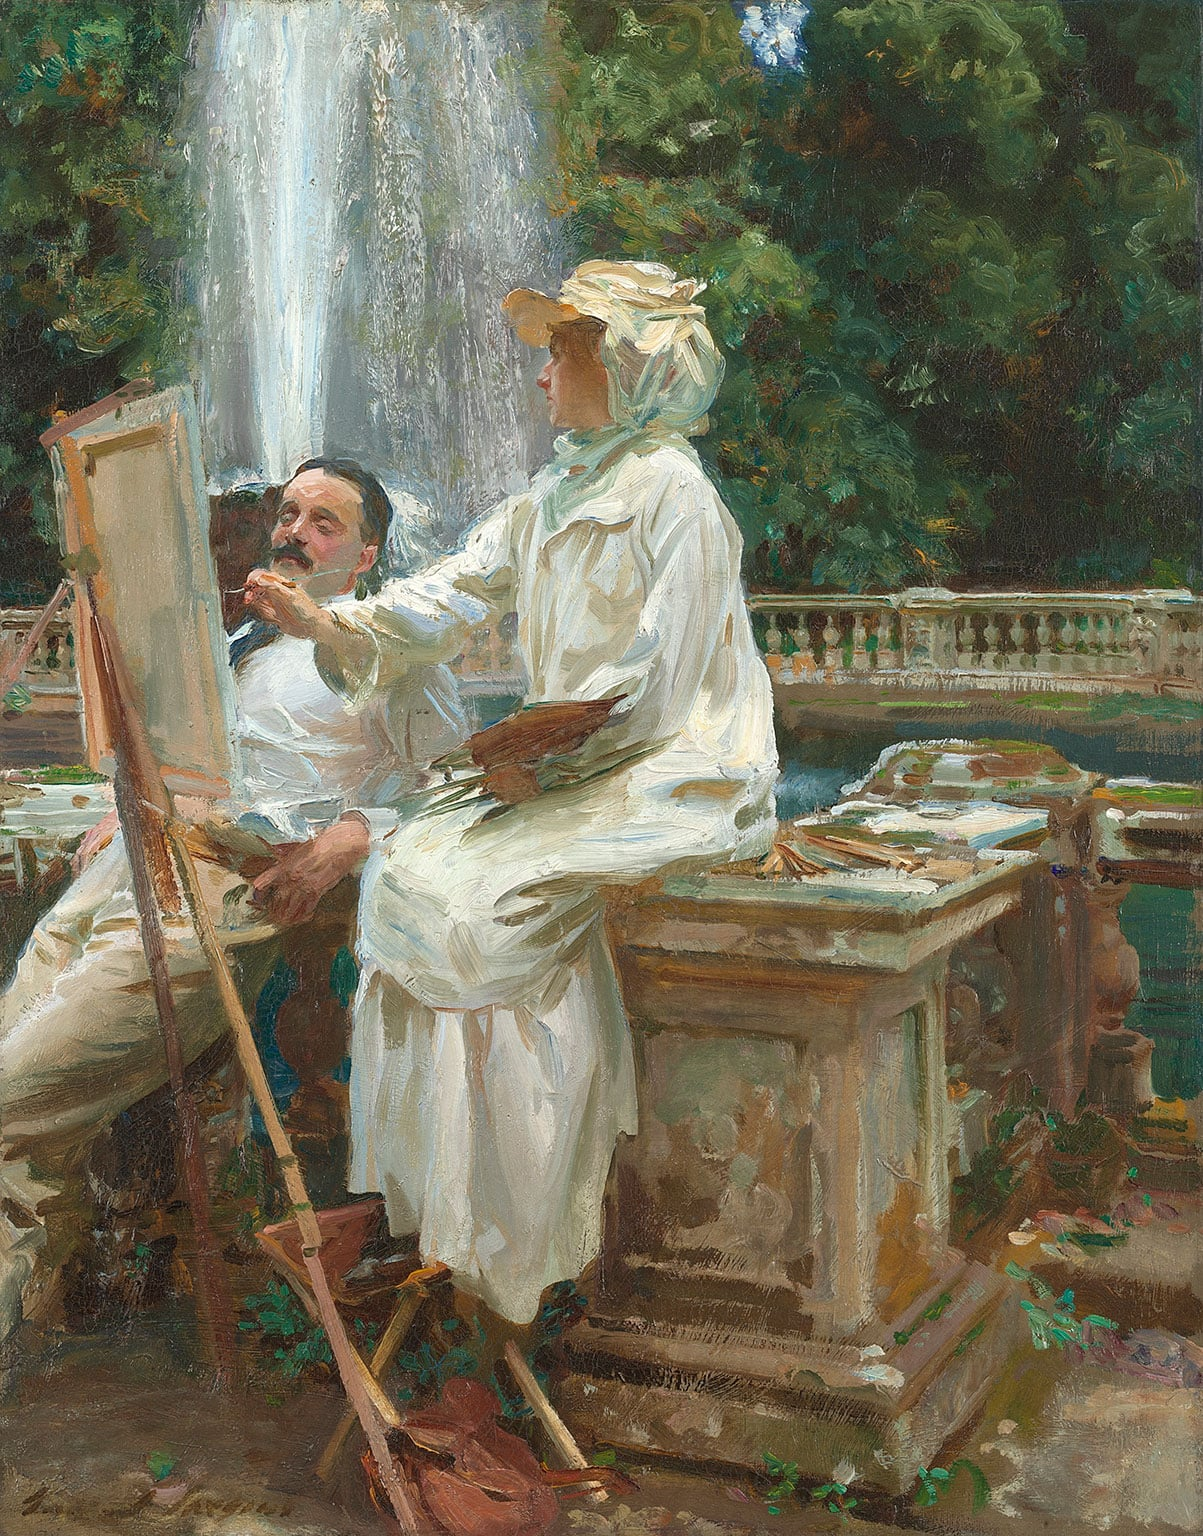 1. Sargent: Portraits of Artists and Friends, National Portrait Gallery, 50% off with National Art Pass - John Singer Sargent, The Fountain, Villa Torlonia, Frascati, Italy, 1907